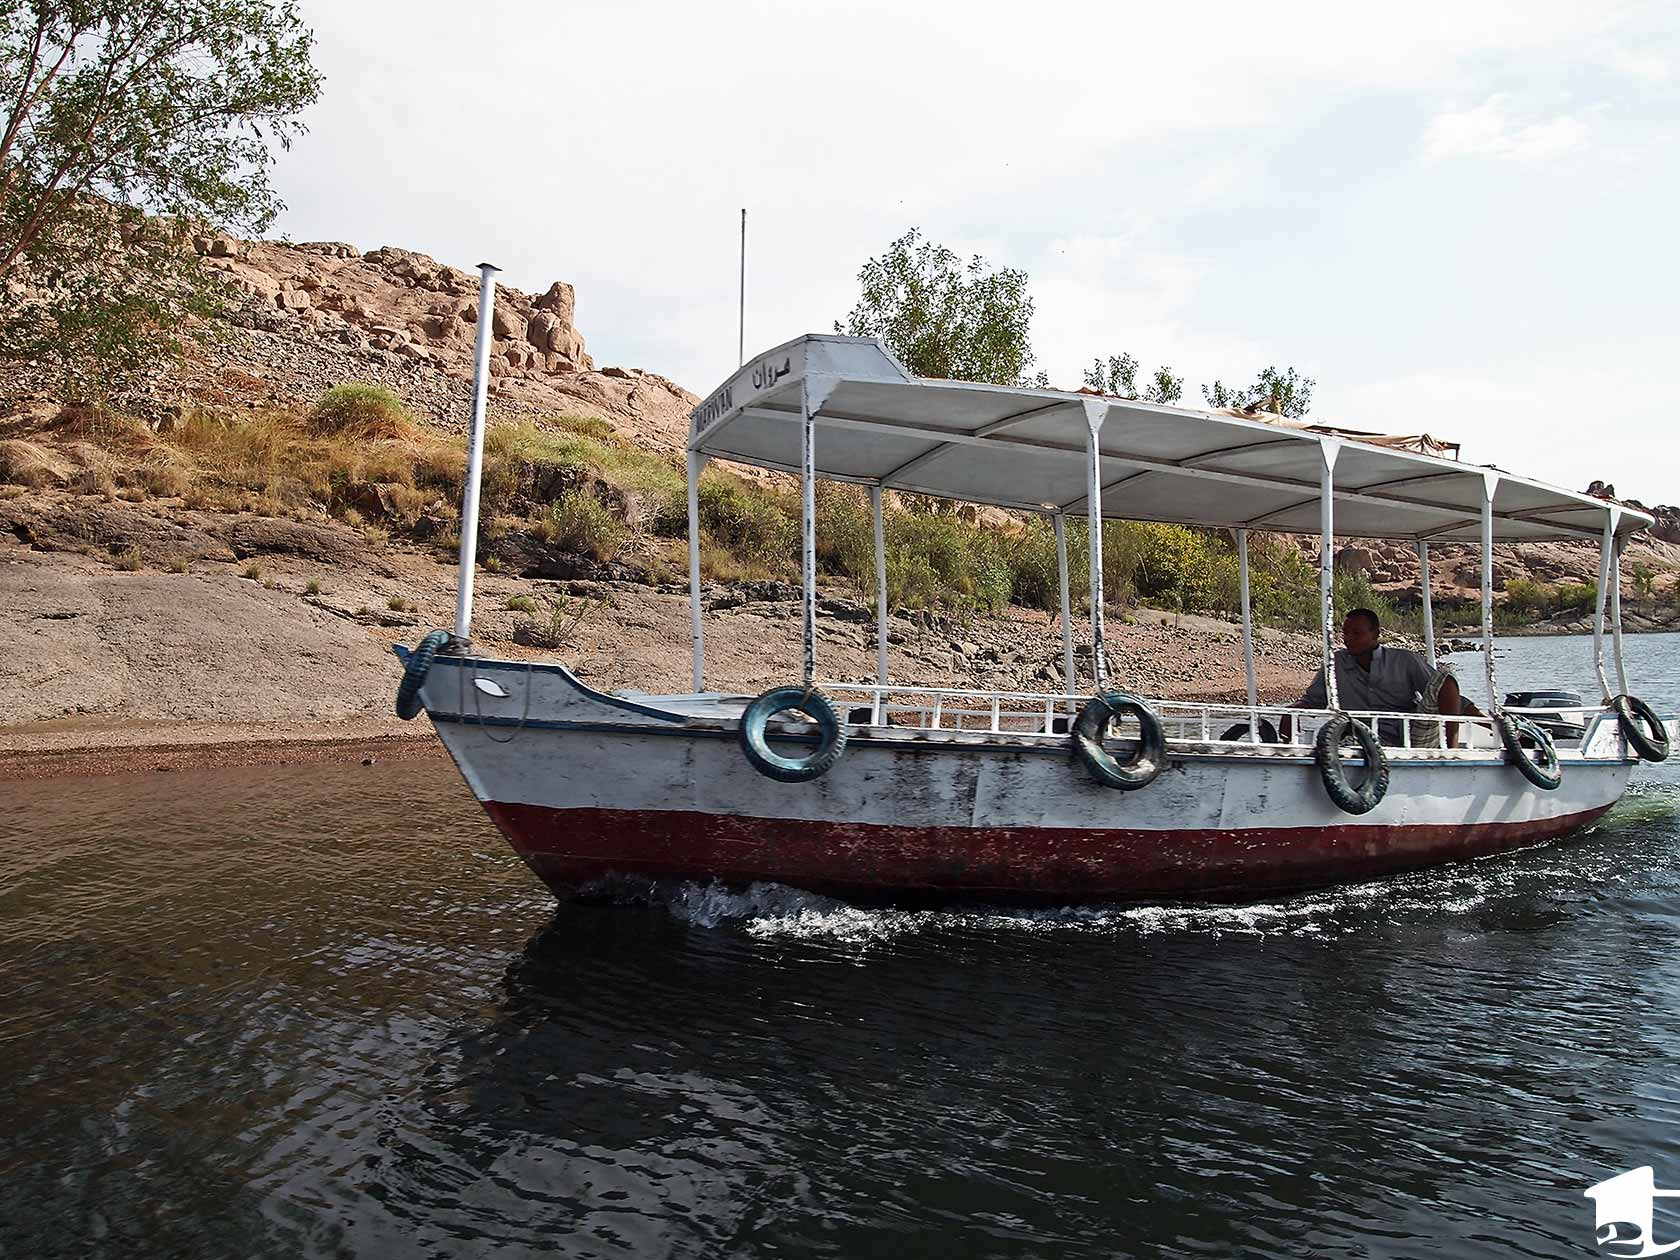 Boat that brings tourists to Philae